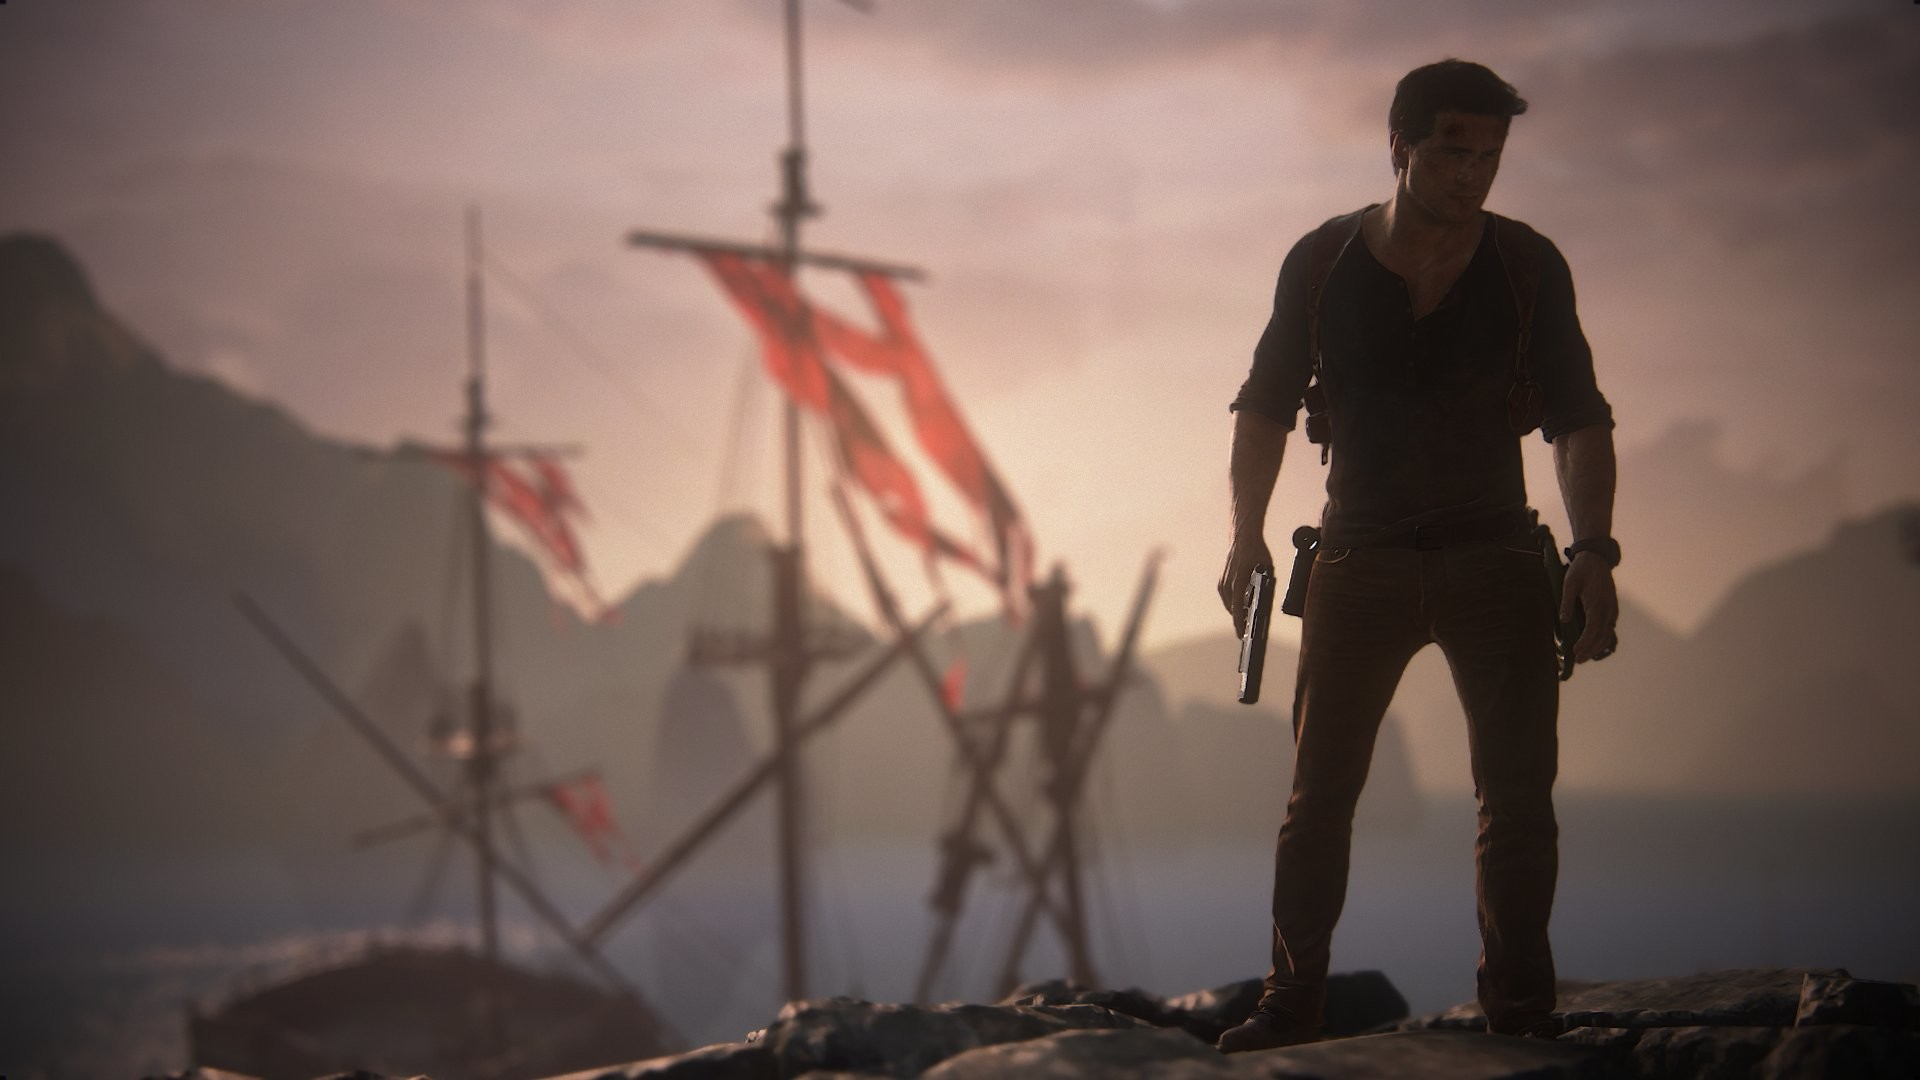 … Uncharted 4: A Thief's End 1080p Wallpaper